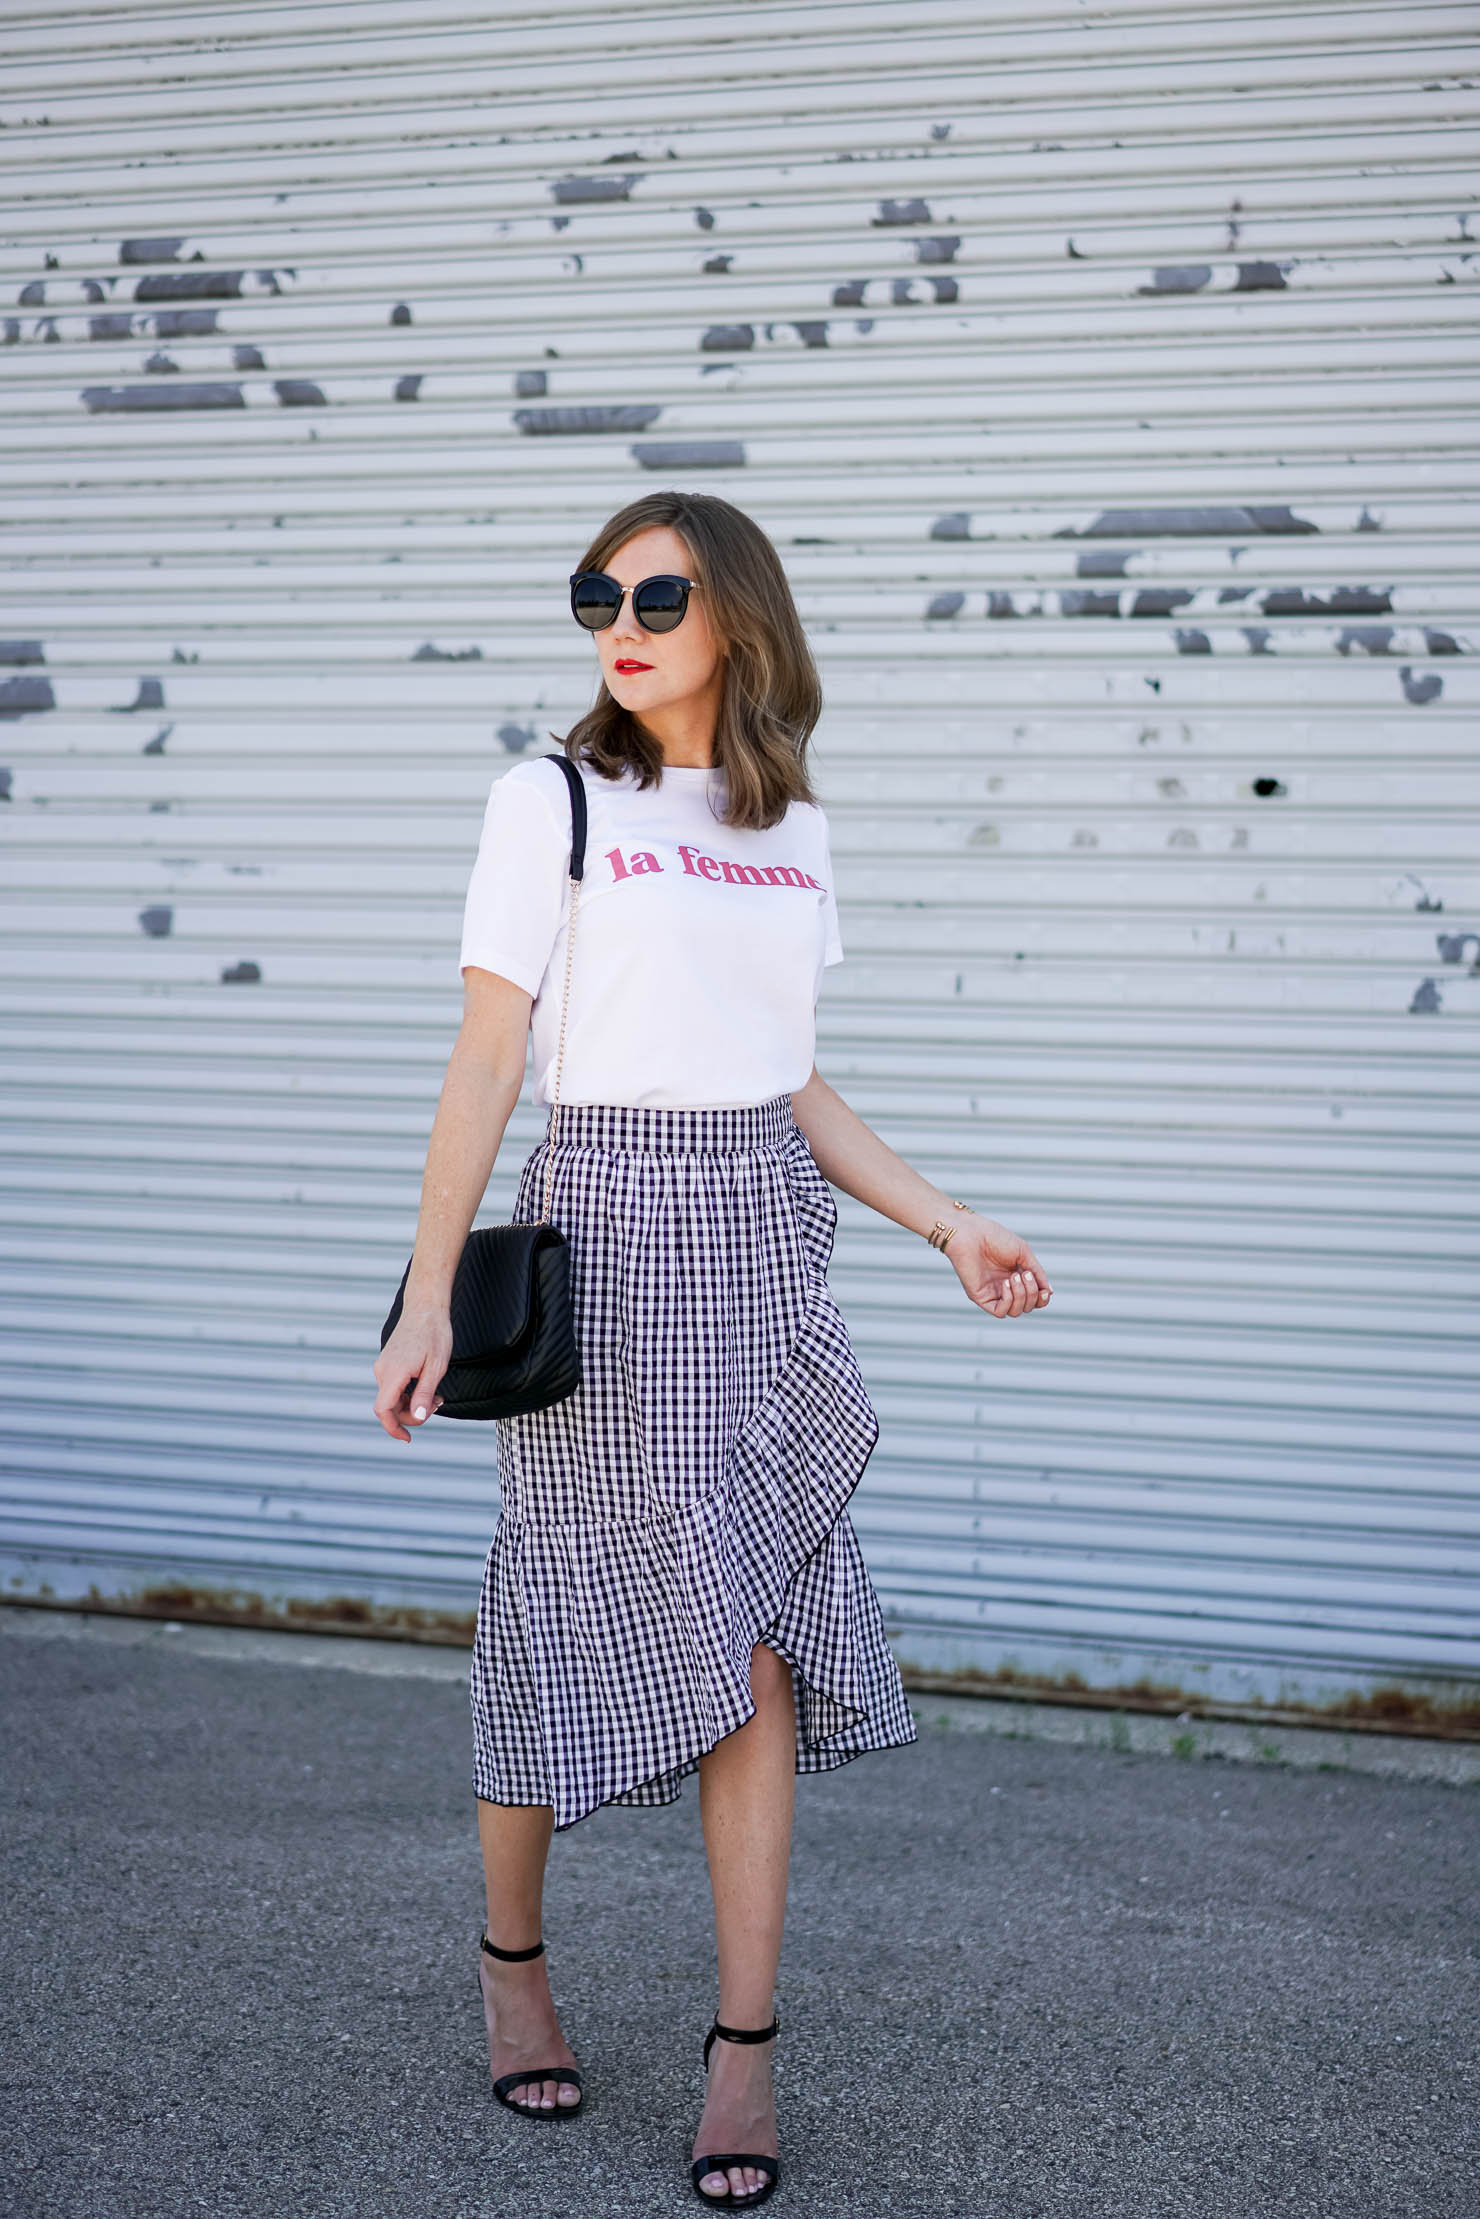 Parisian chic, gingham ruffled midi skirt, la femme tee easy, parisian inspired outfit, how to dress like a french girl, black and white gingham midi skirt